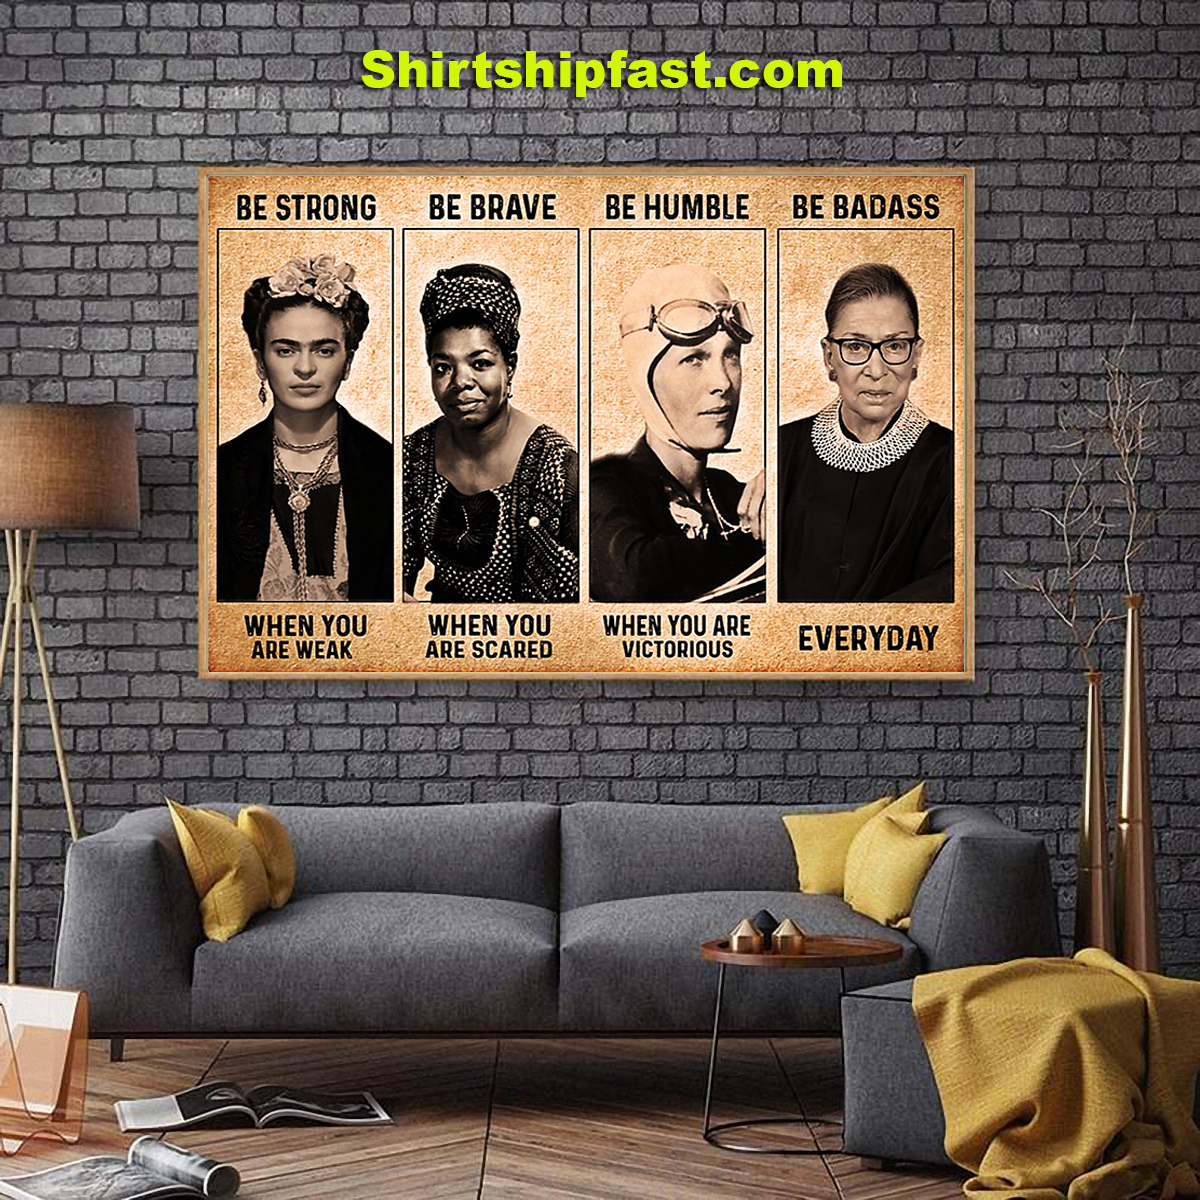 Frida Kahlo Maya Angelou feminist be strong be brave be humble be badass poster - Picture 3